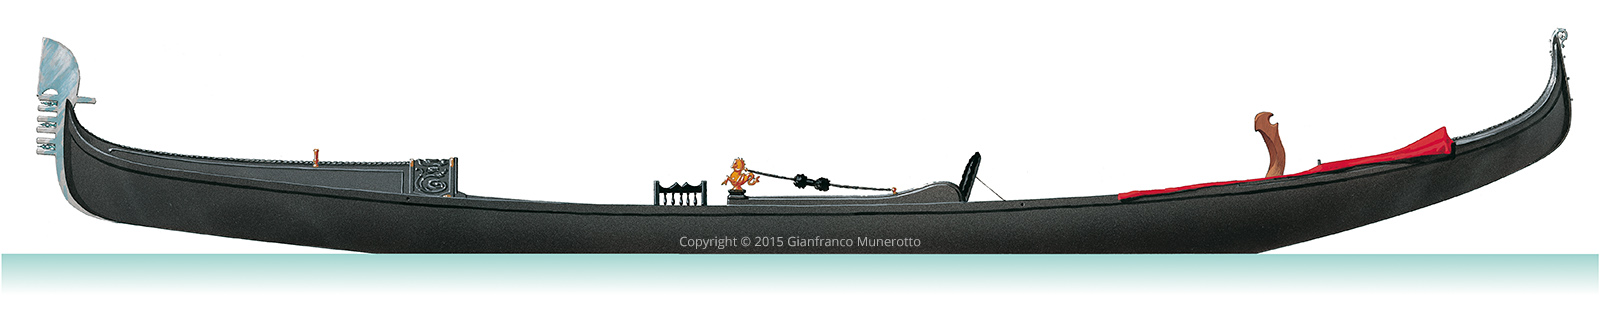 gondola-900-gianfranco-munarotto